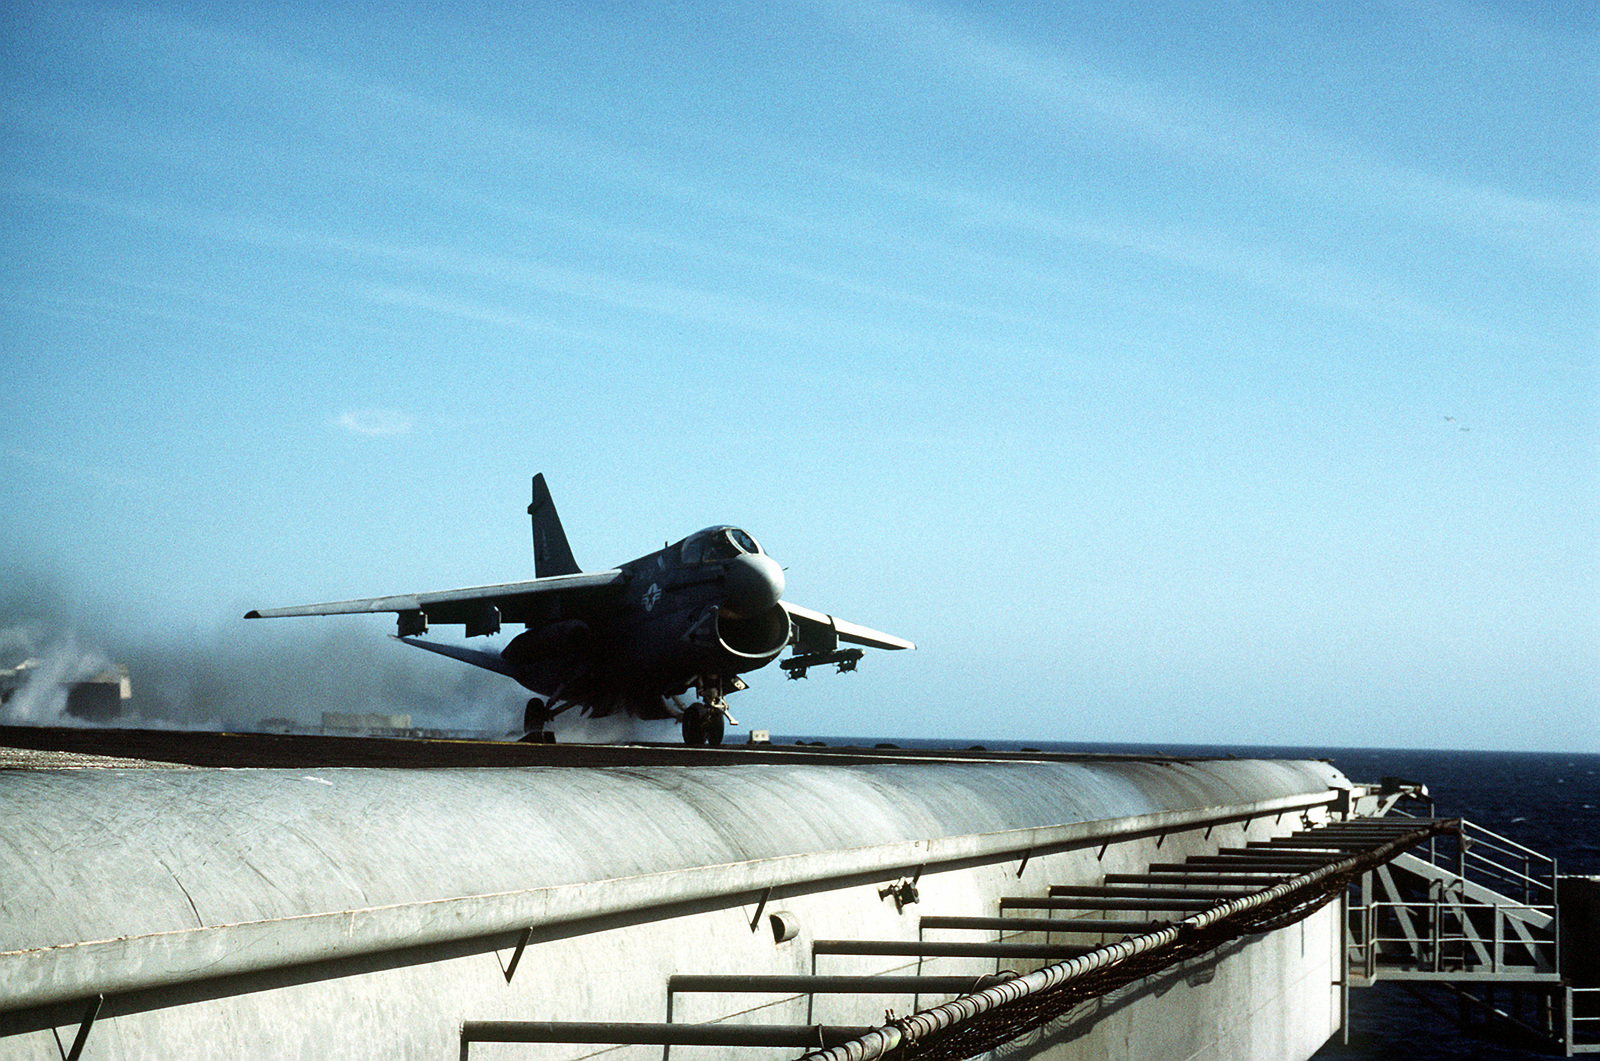 An Attack Squadron 46 (VA-46) A-7 Corsair II aircraft is launched during flight operations aboard the nuclear-powered aircraft carrier USS DWIGHT D. EISENHOWER (CVN-69)